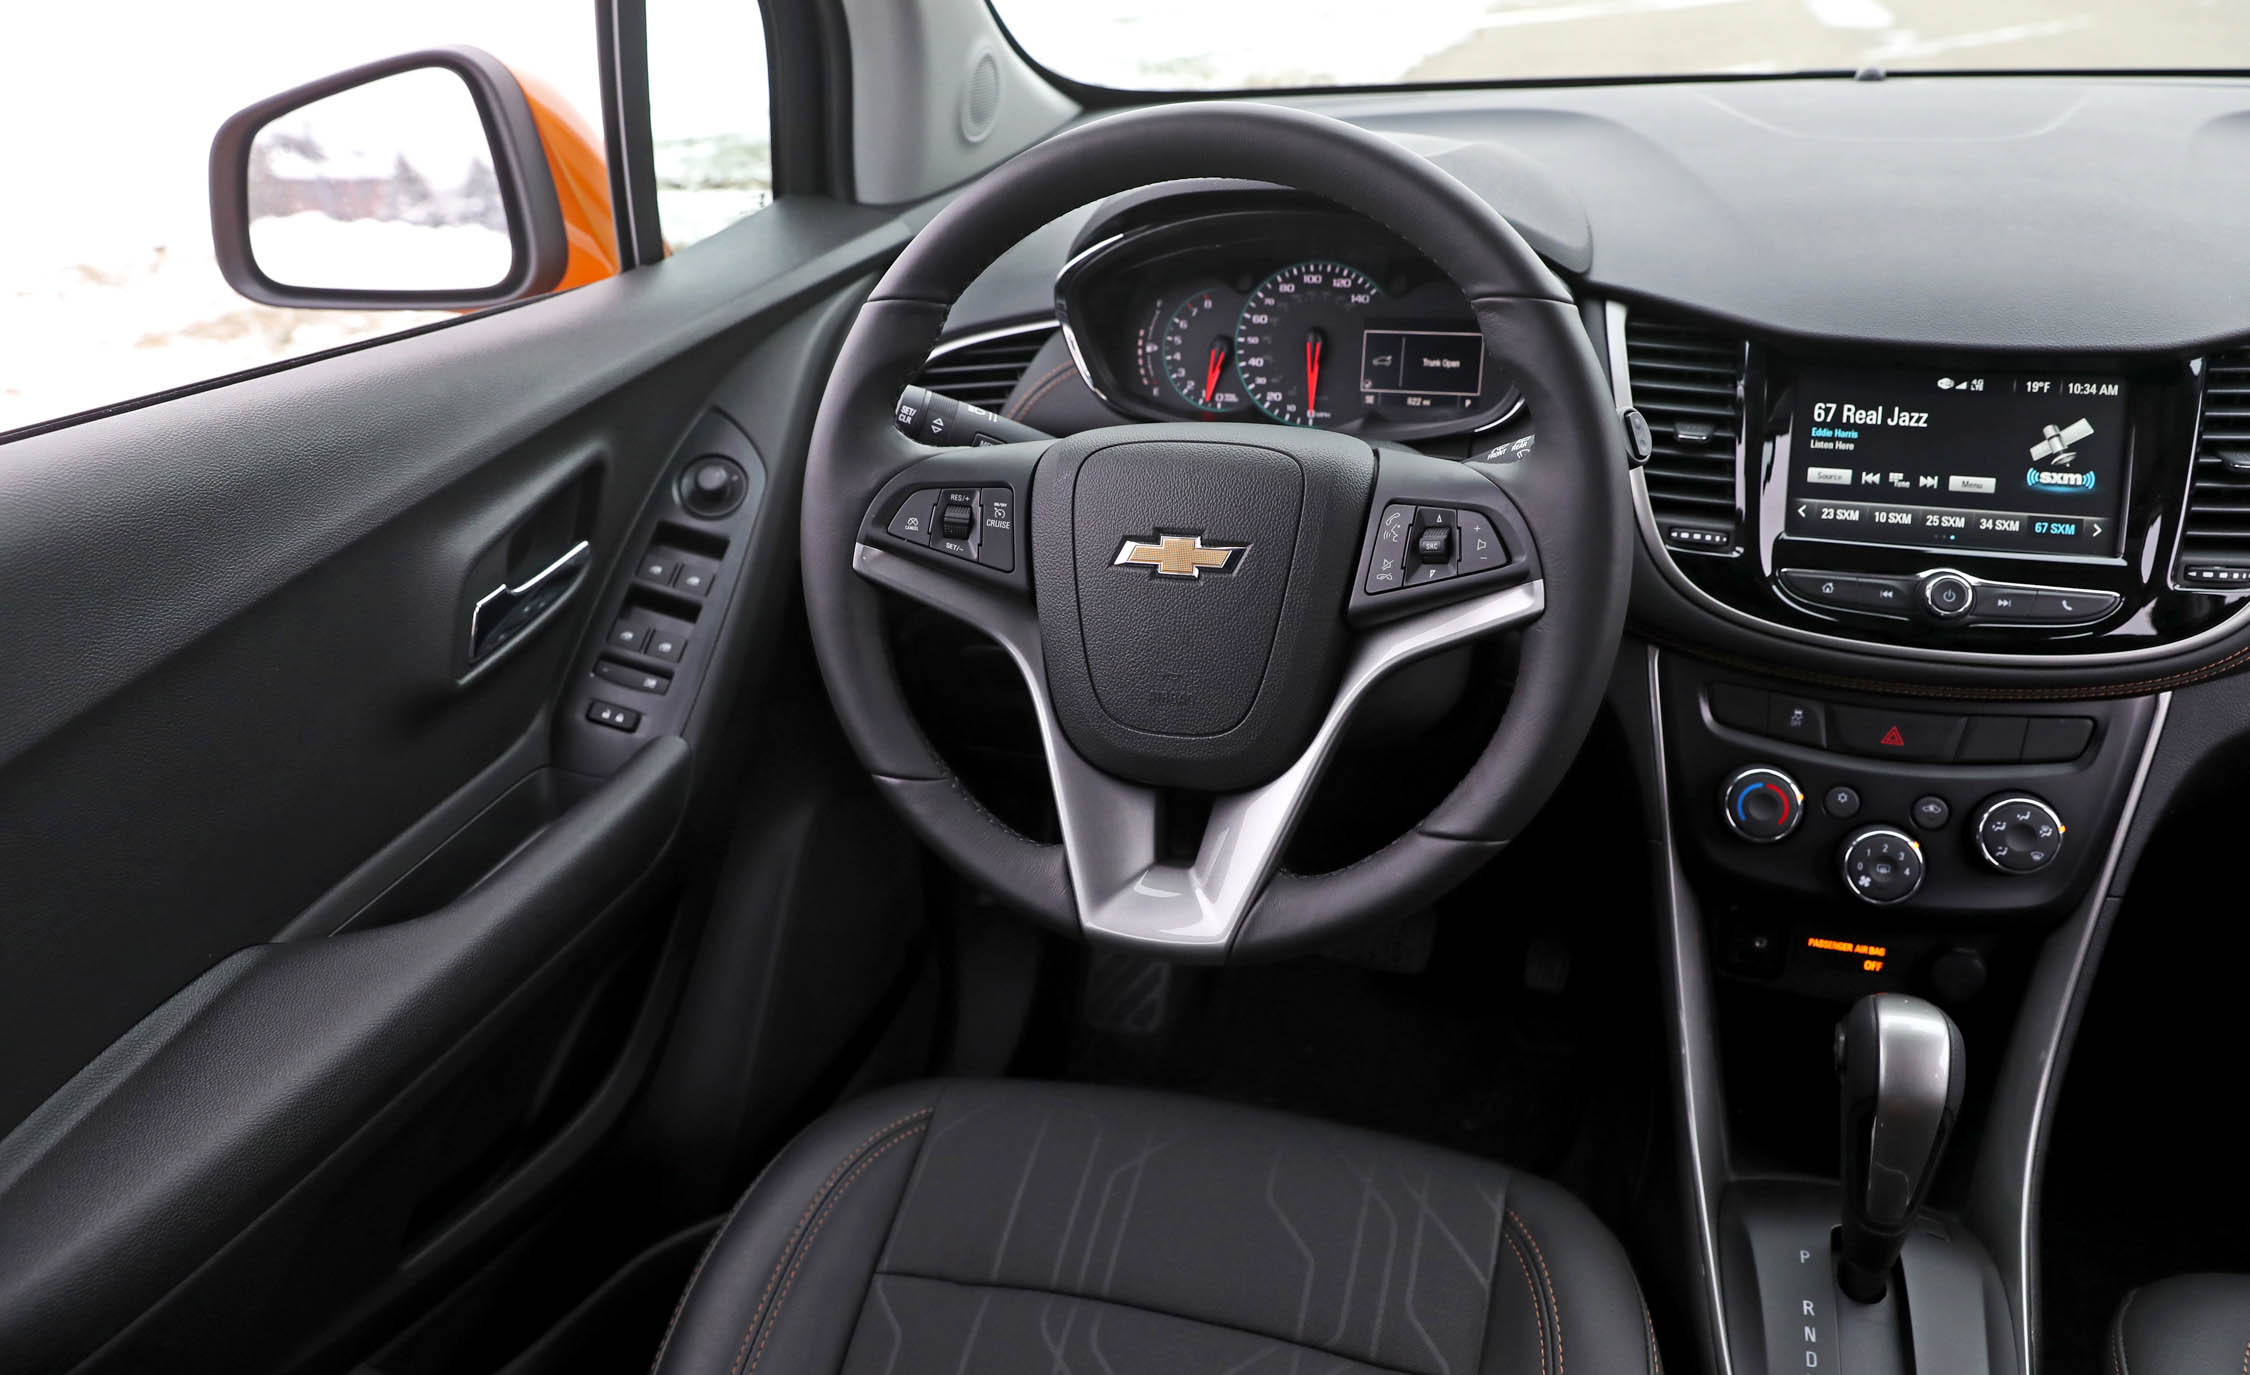 2017 Chevrolet Trax Interior Steering (View 25 of 47)